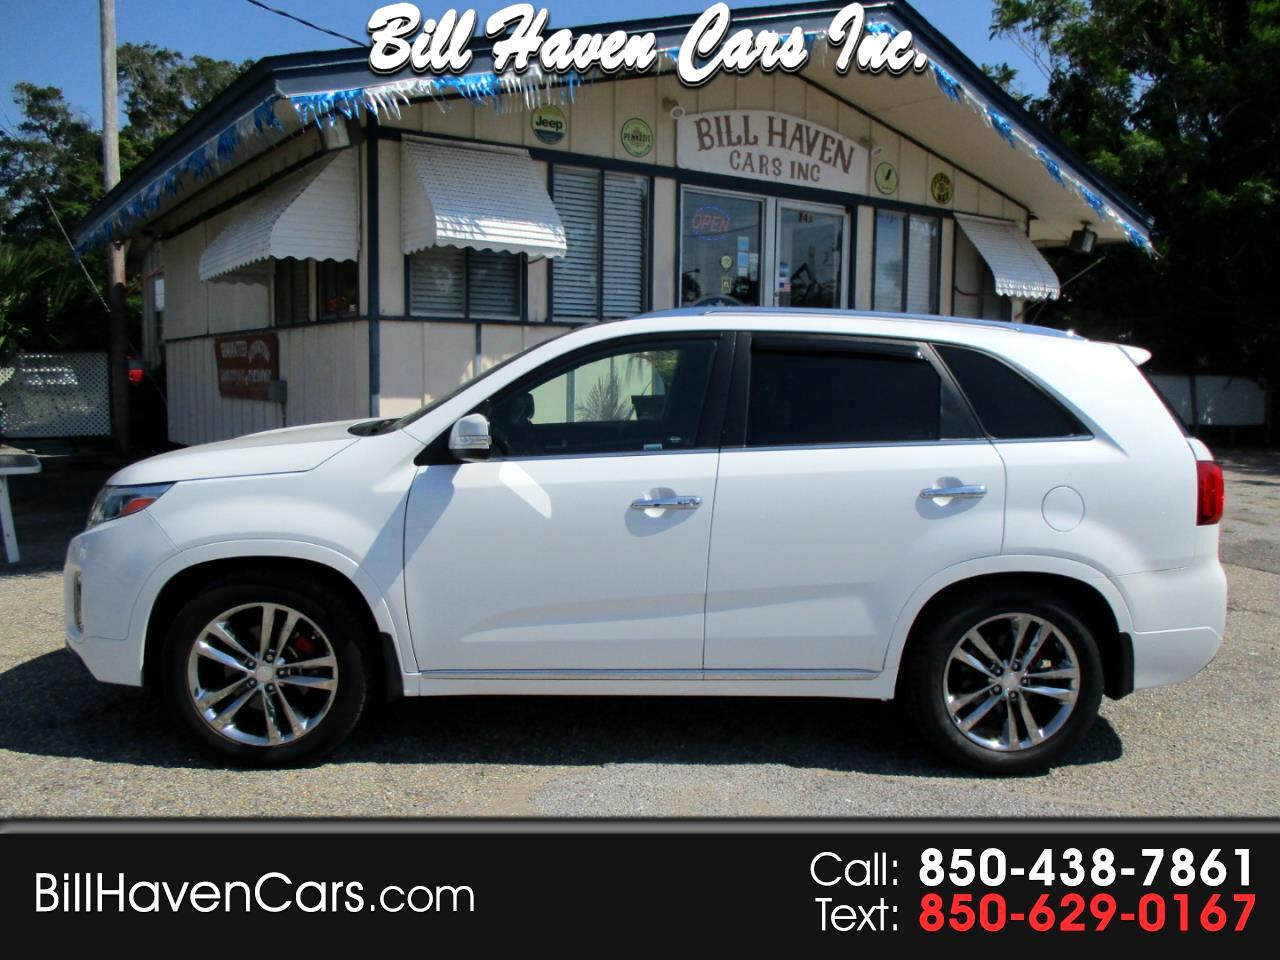 Used Cars Pensacola >> Used Cars For Sale Pensacola Fl 32502 Bill Haven Cars Inc